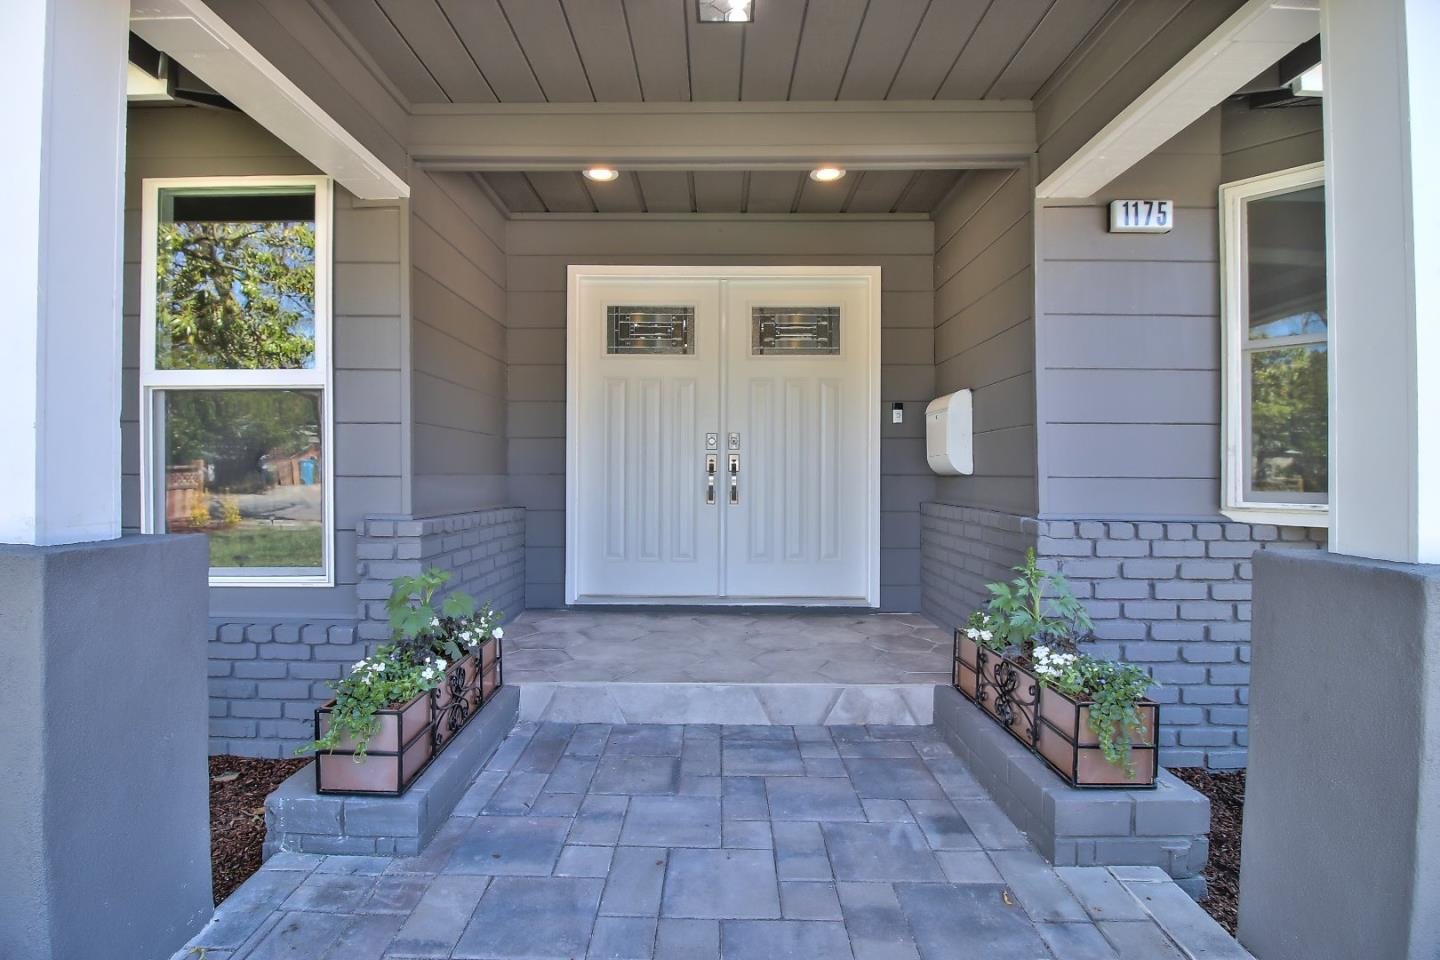 Additional photo for property listing at 1175 Truman St.  REDWOOD CITY, CALIFORNIA 94061